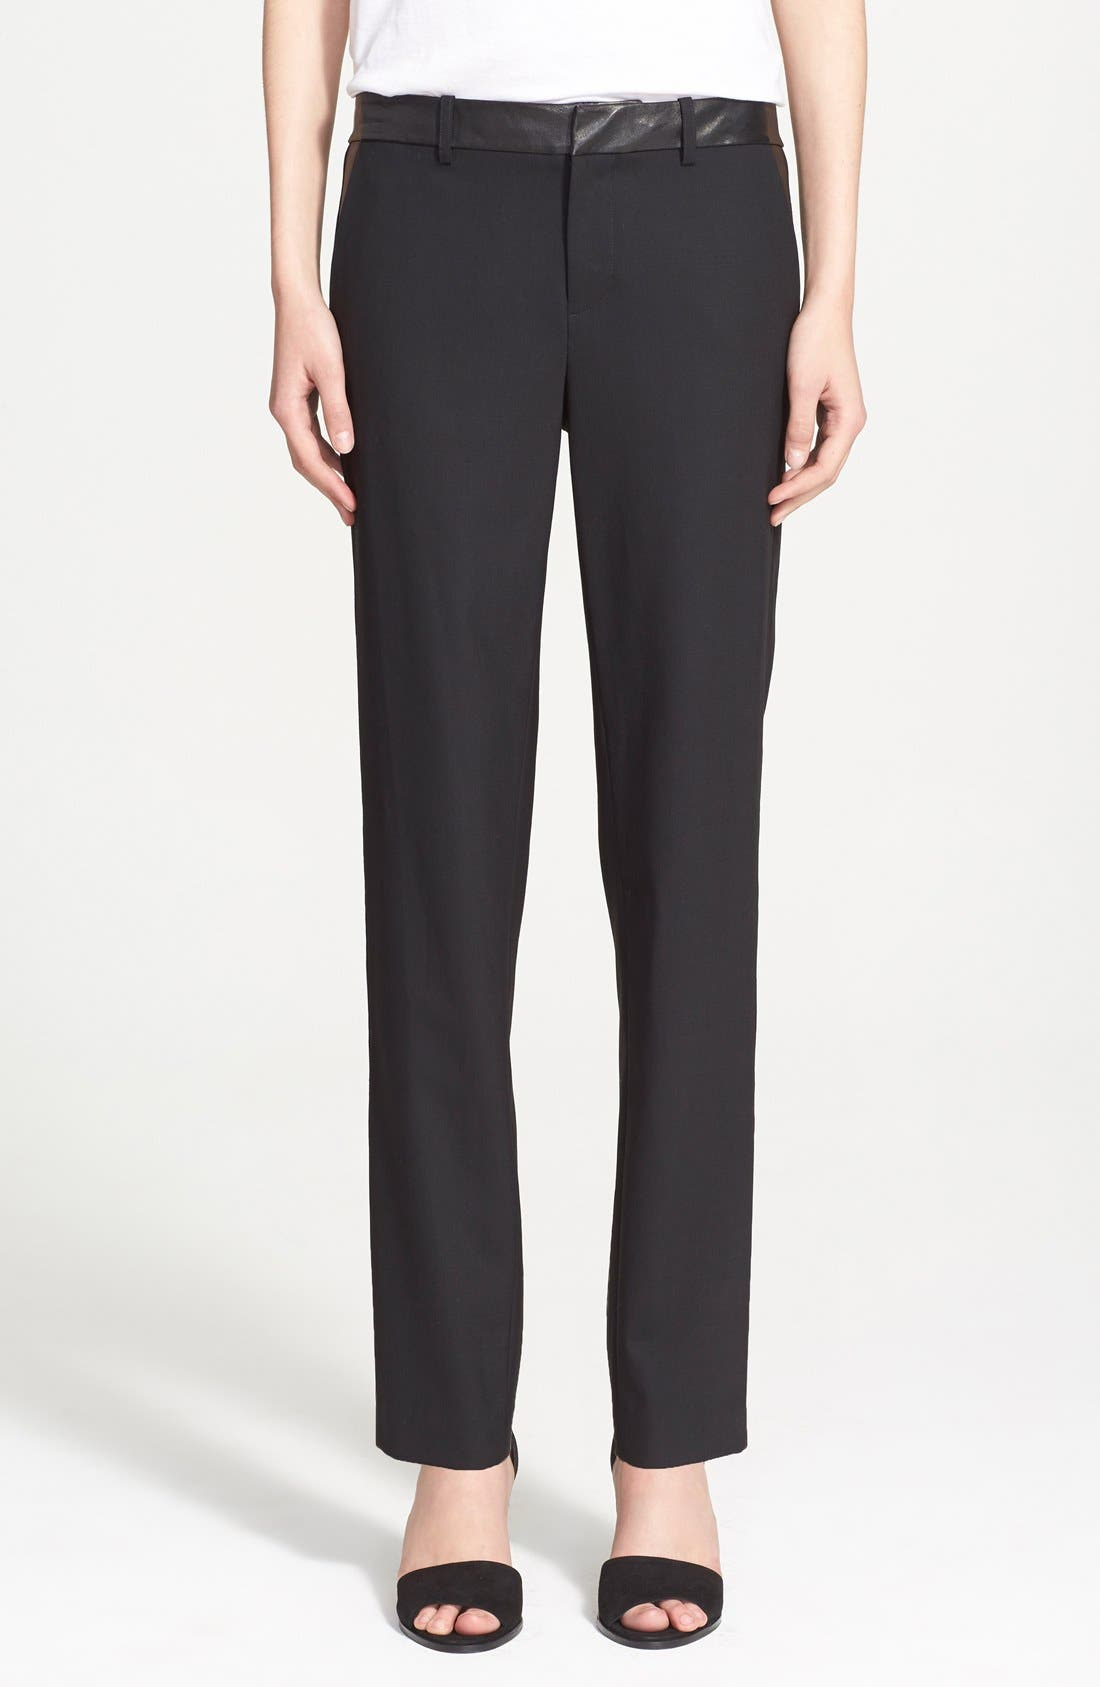 Main Image - Vince 'Strapping' Leather Trim Trousers